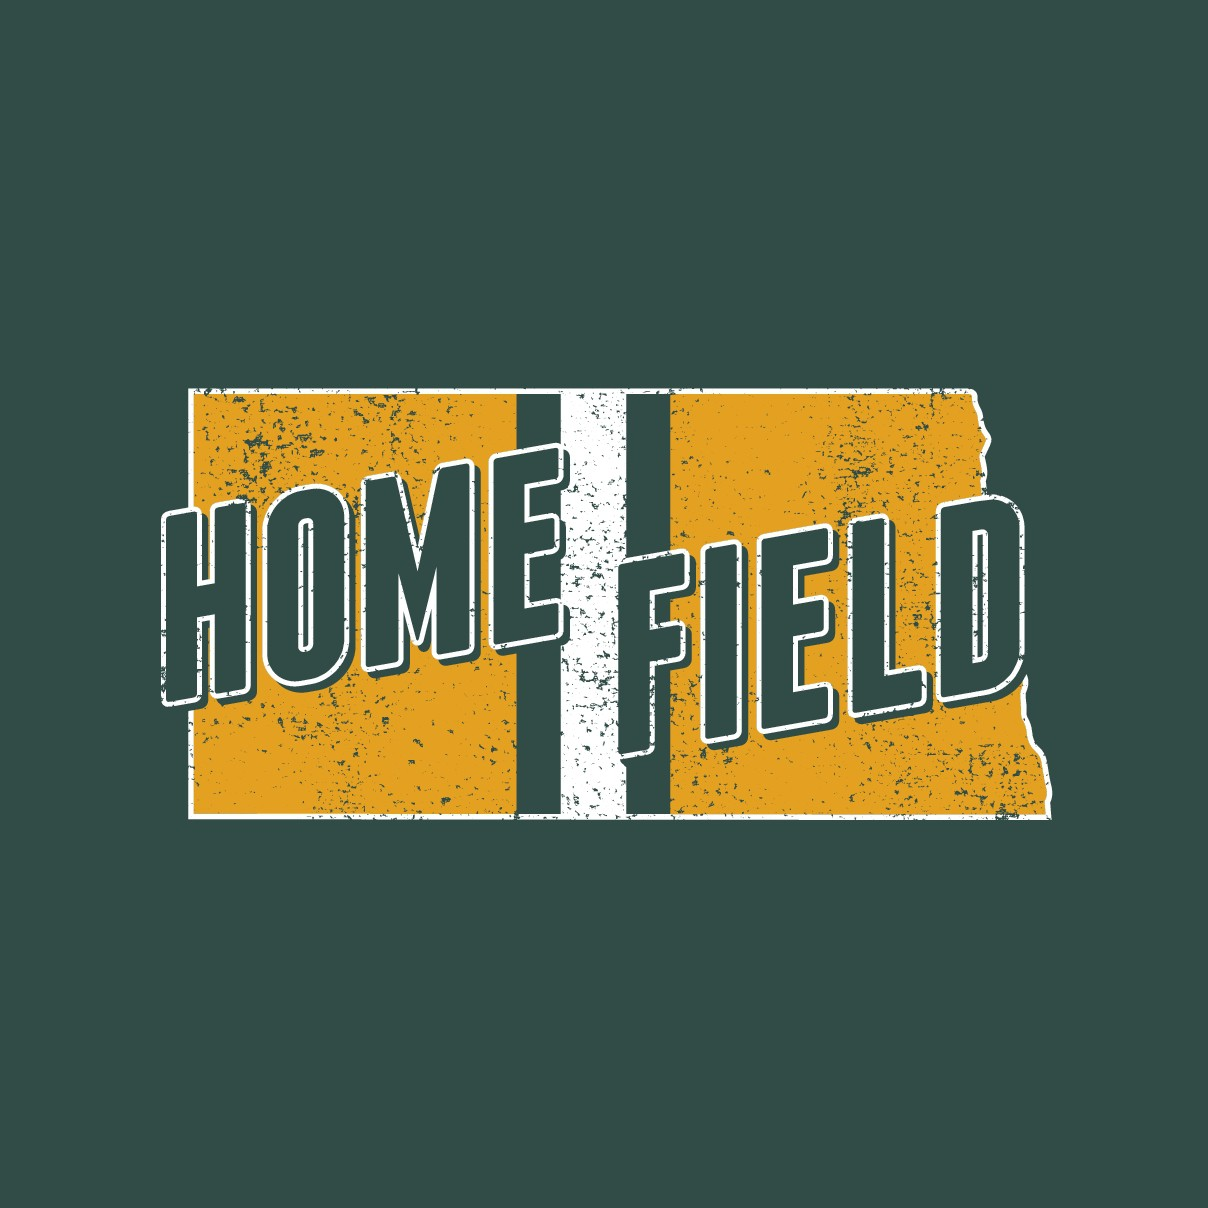 Designs in png format and north Dakota state university home field